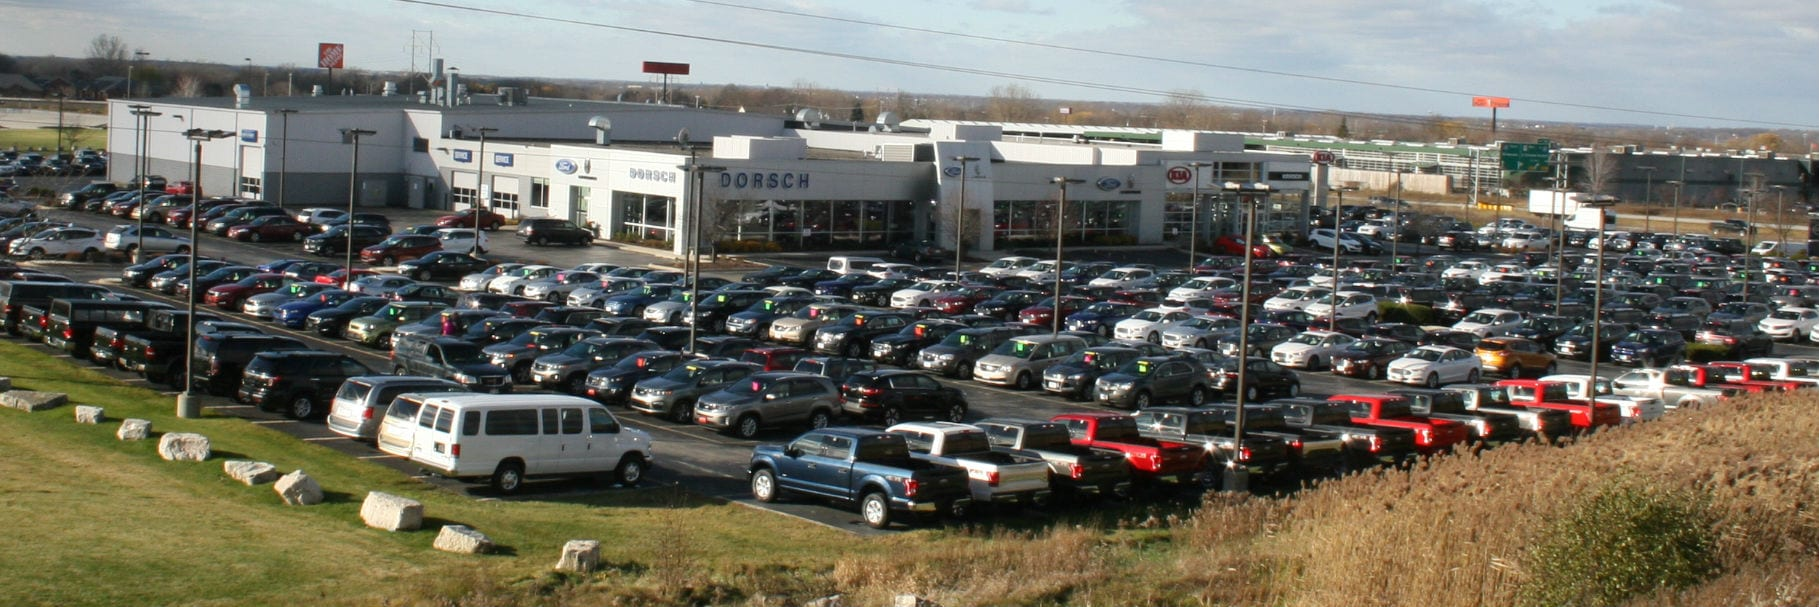 About Dorsch Ford Lincoln Kia In Green Bay Wi New Used Car